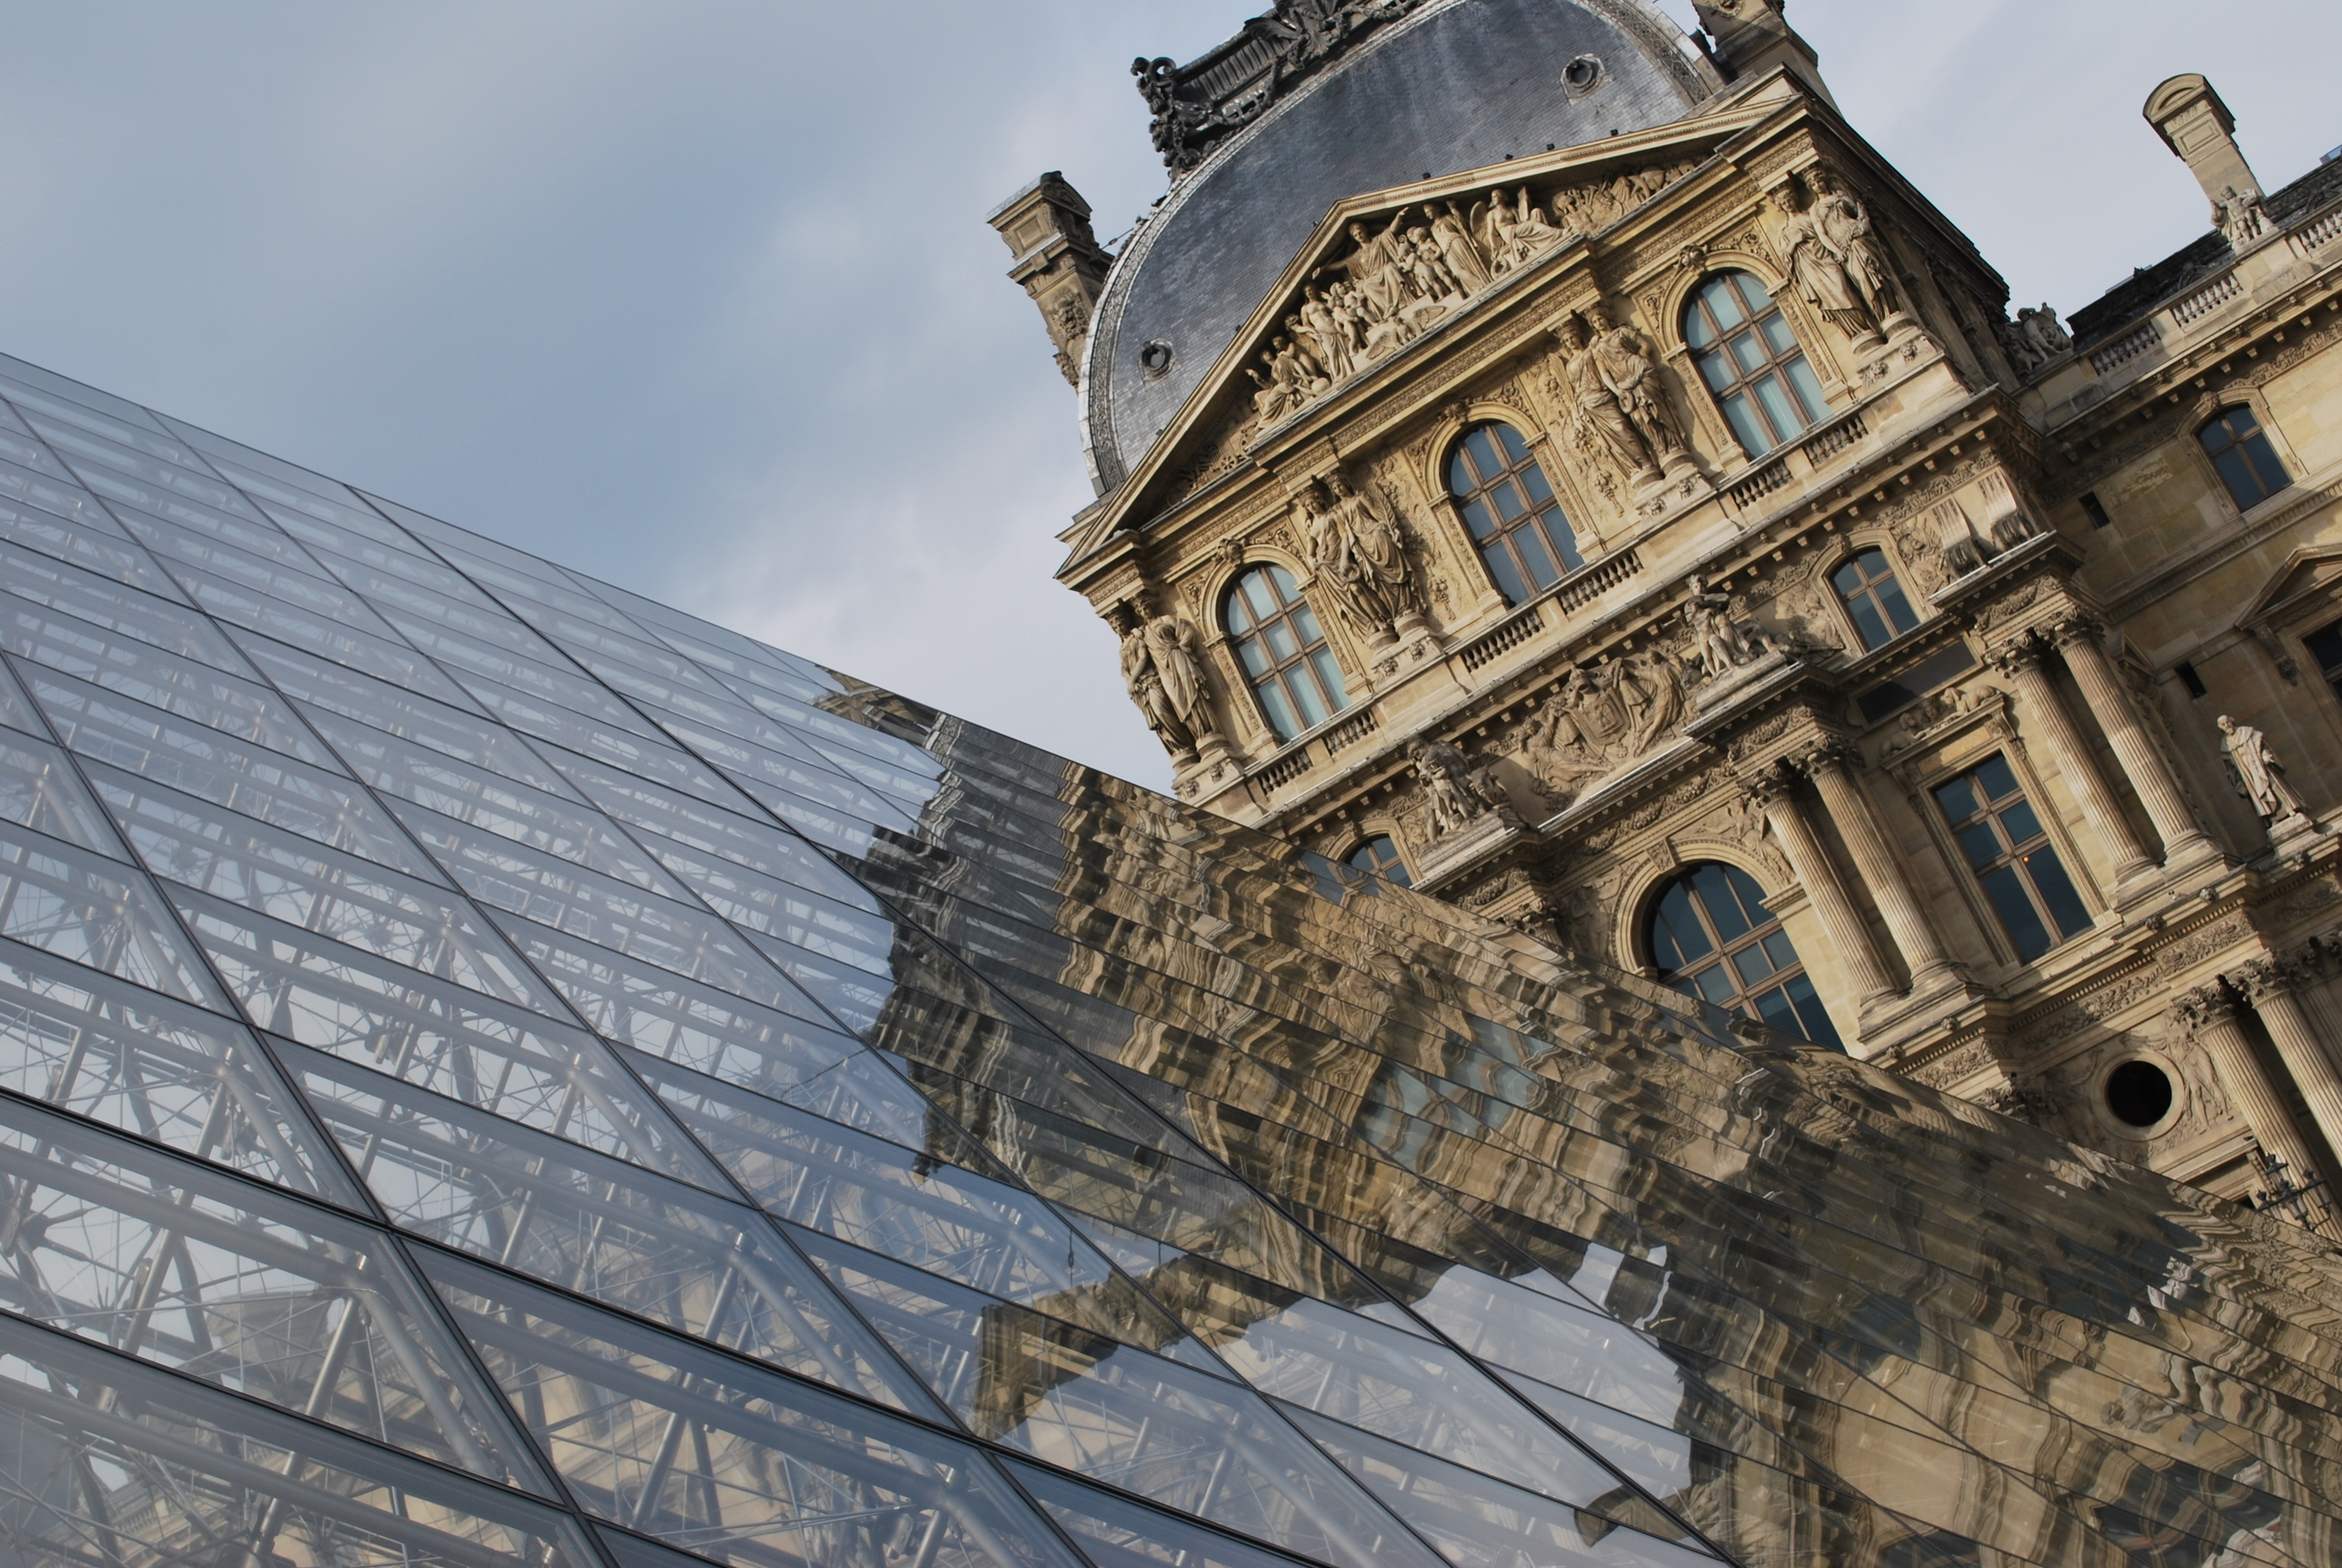 1/Take a private tour of The Louvre